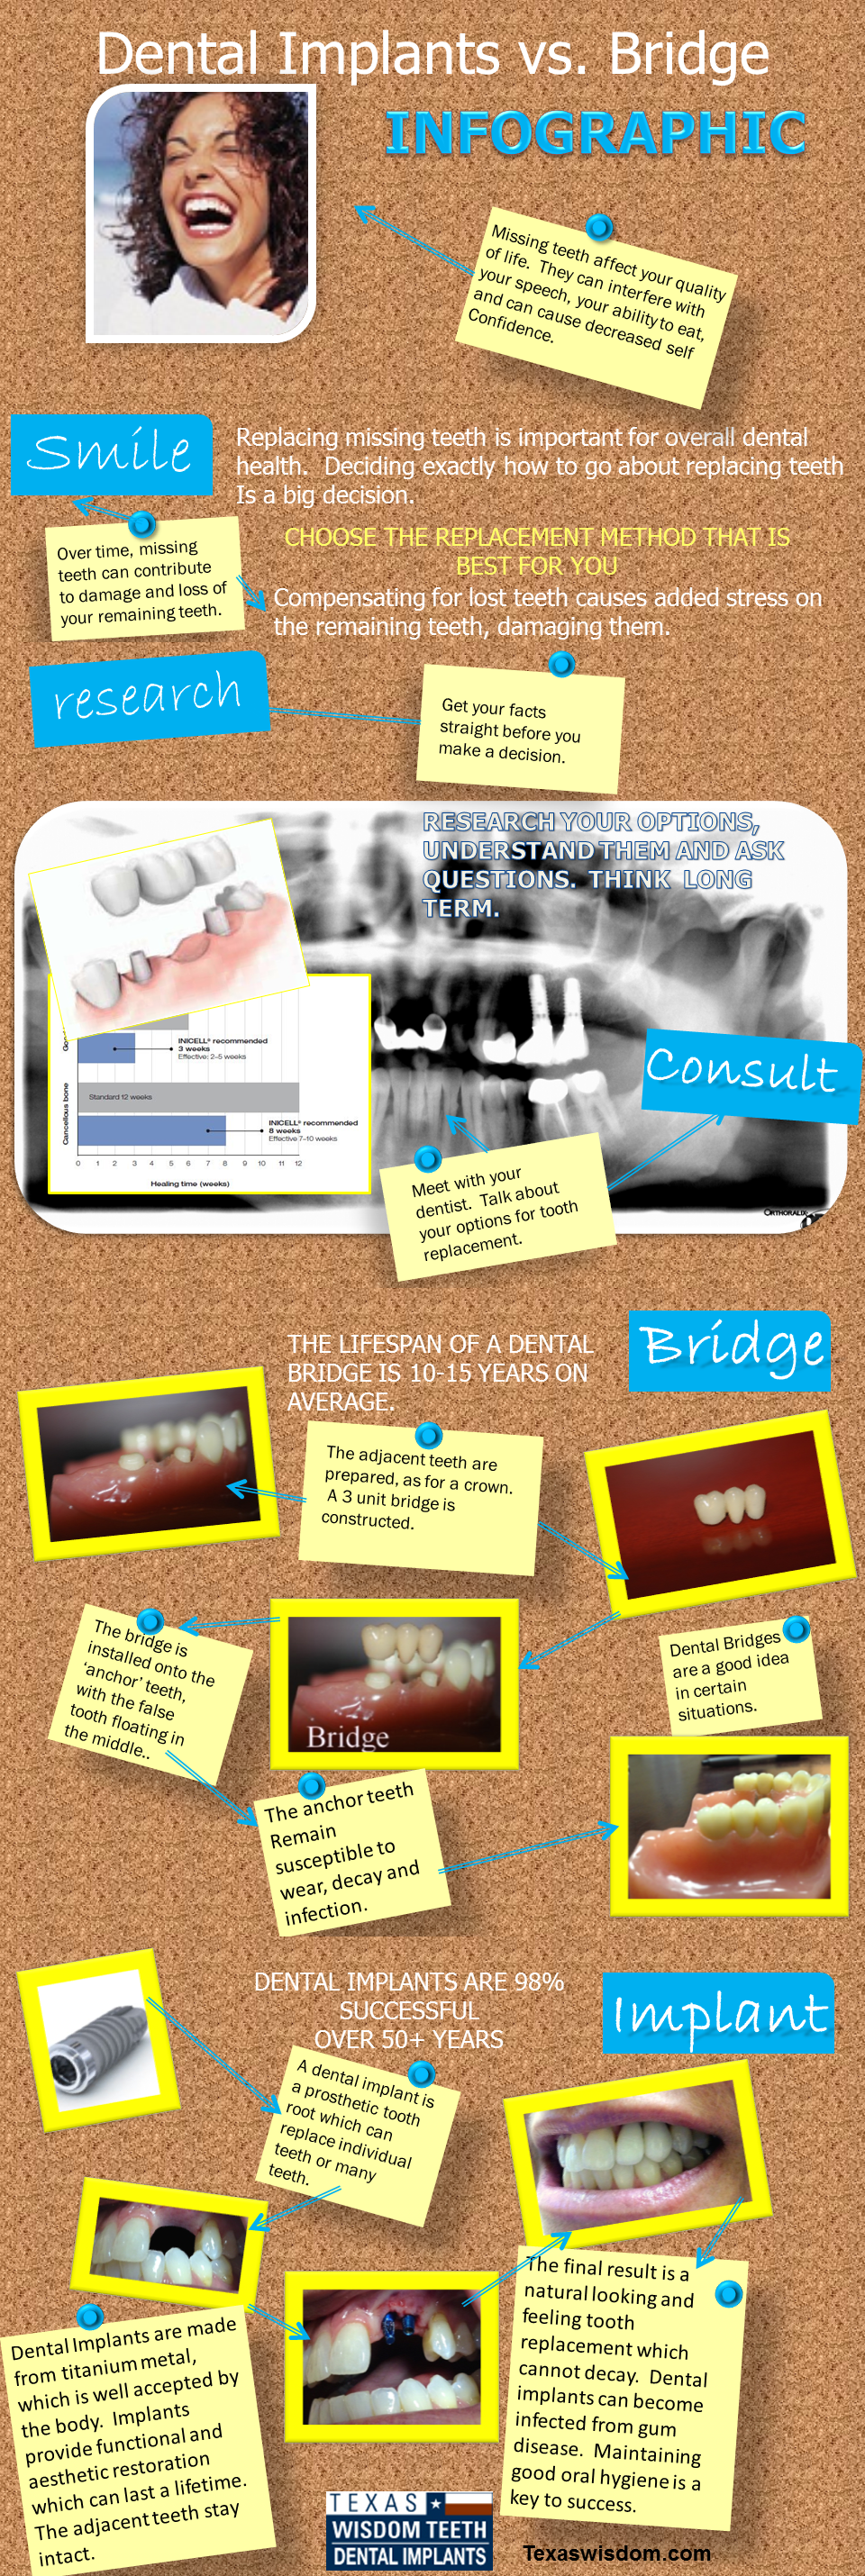 Facts about dental implants vs. dental bridge.  A guide to making an educated decision about replacing missing teeth.